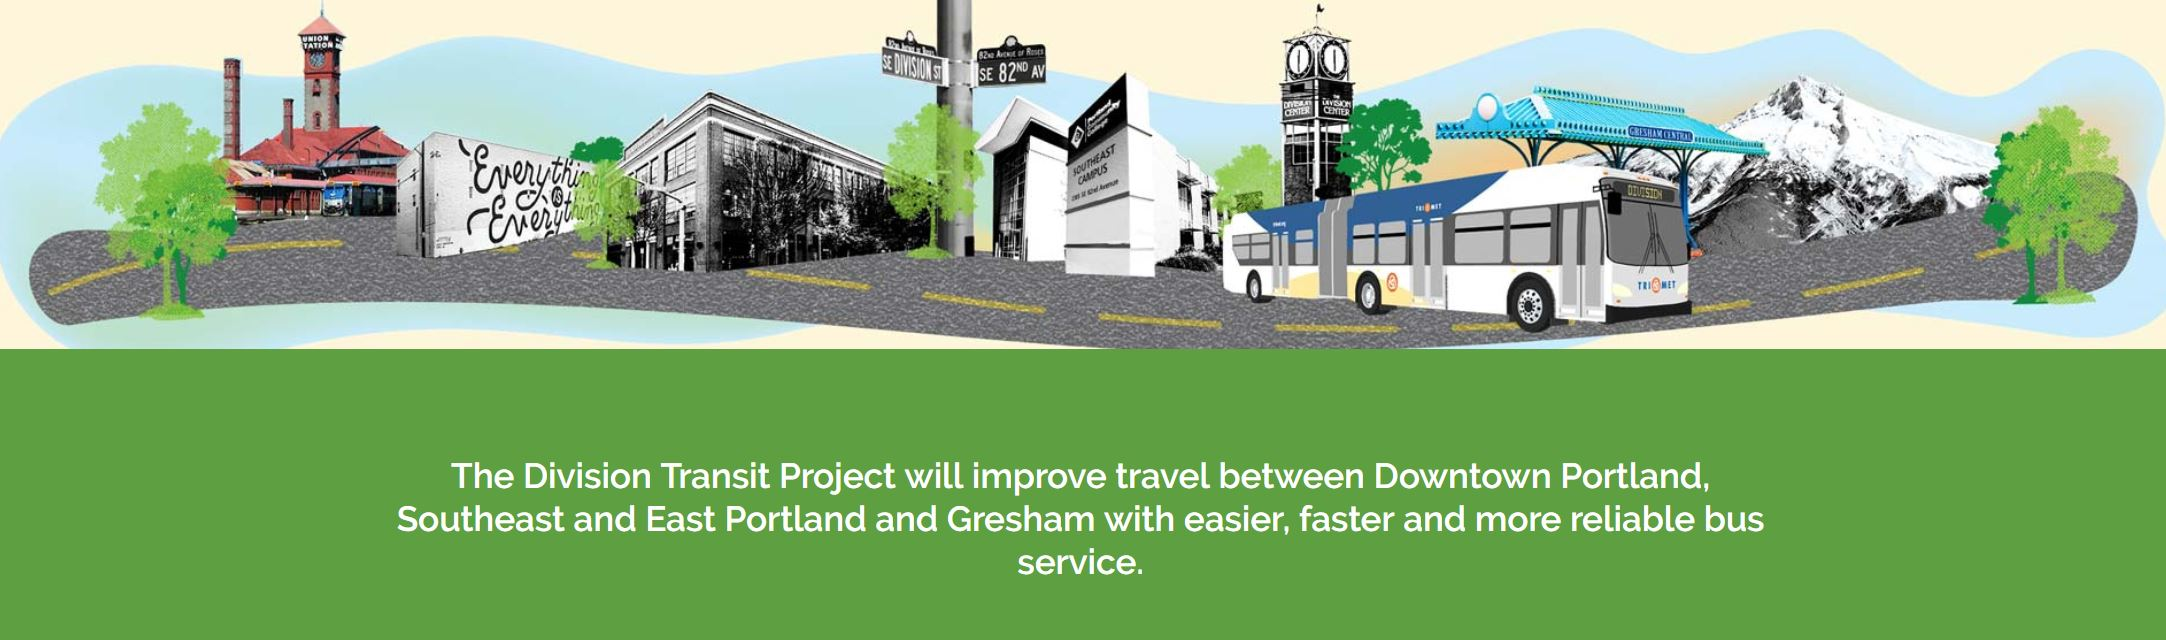 Division is getting an  expansive transit improvement  to make commuting downtown and accessing SE even easier!